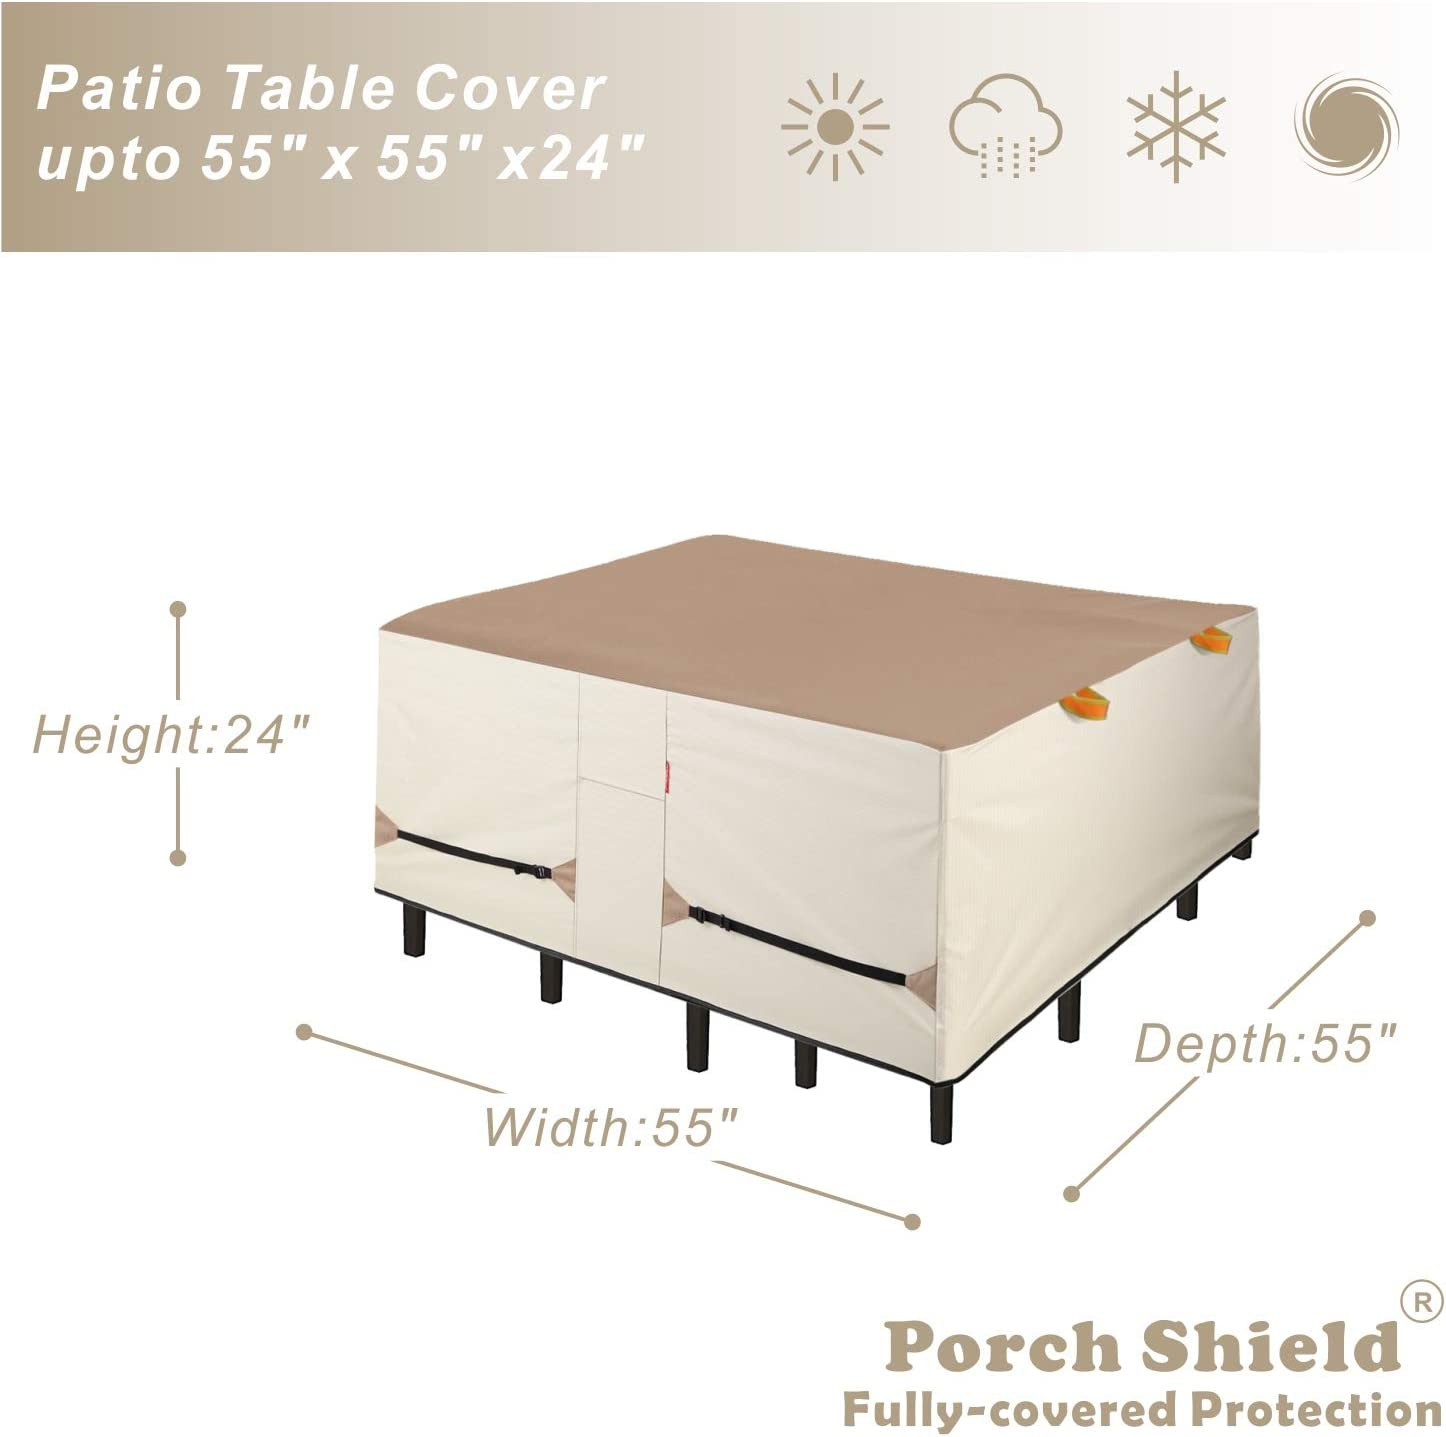 Porch Shield Patio Table Cover - Waterproof Outdoor Dining Table and Chairs Furniture Set Cover Square - 55 x 55 inch : Garden & Outdoor